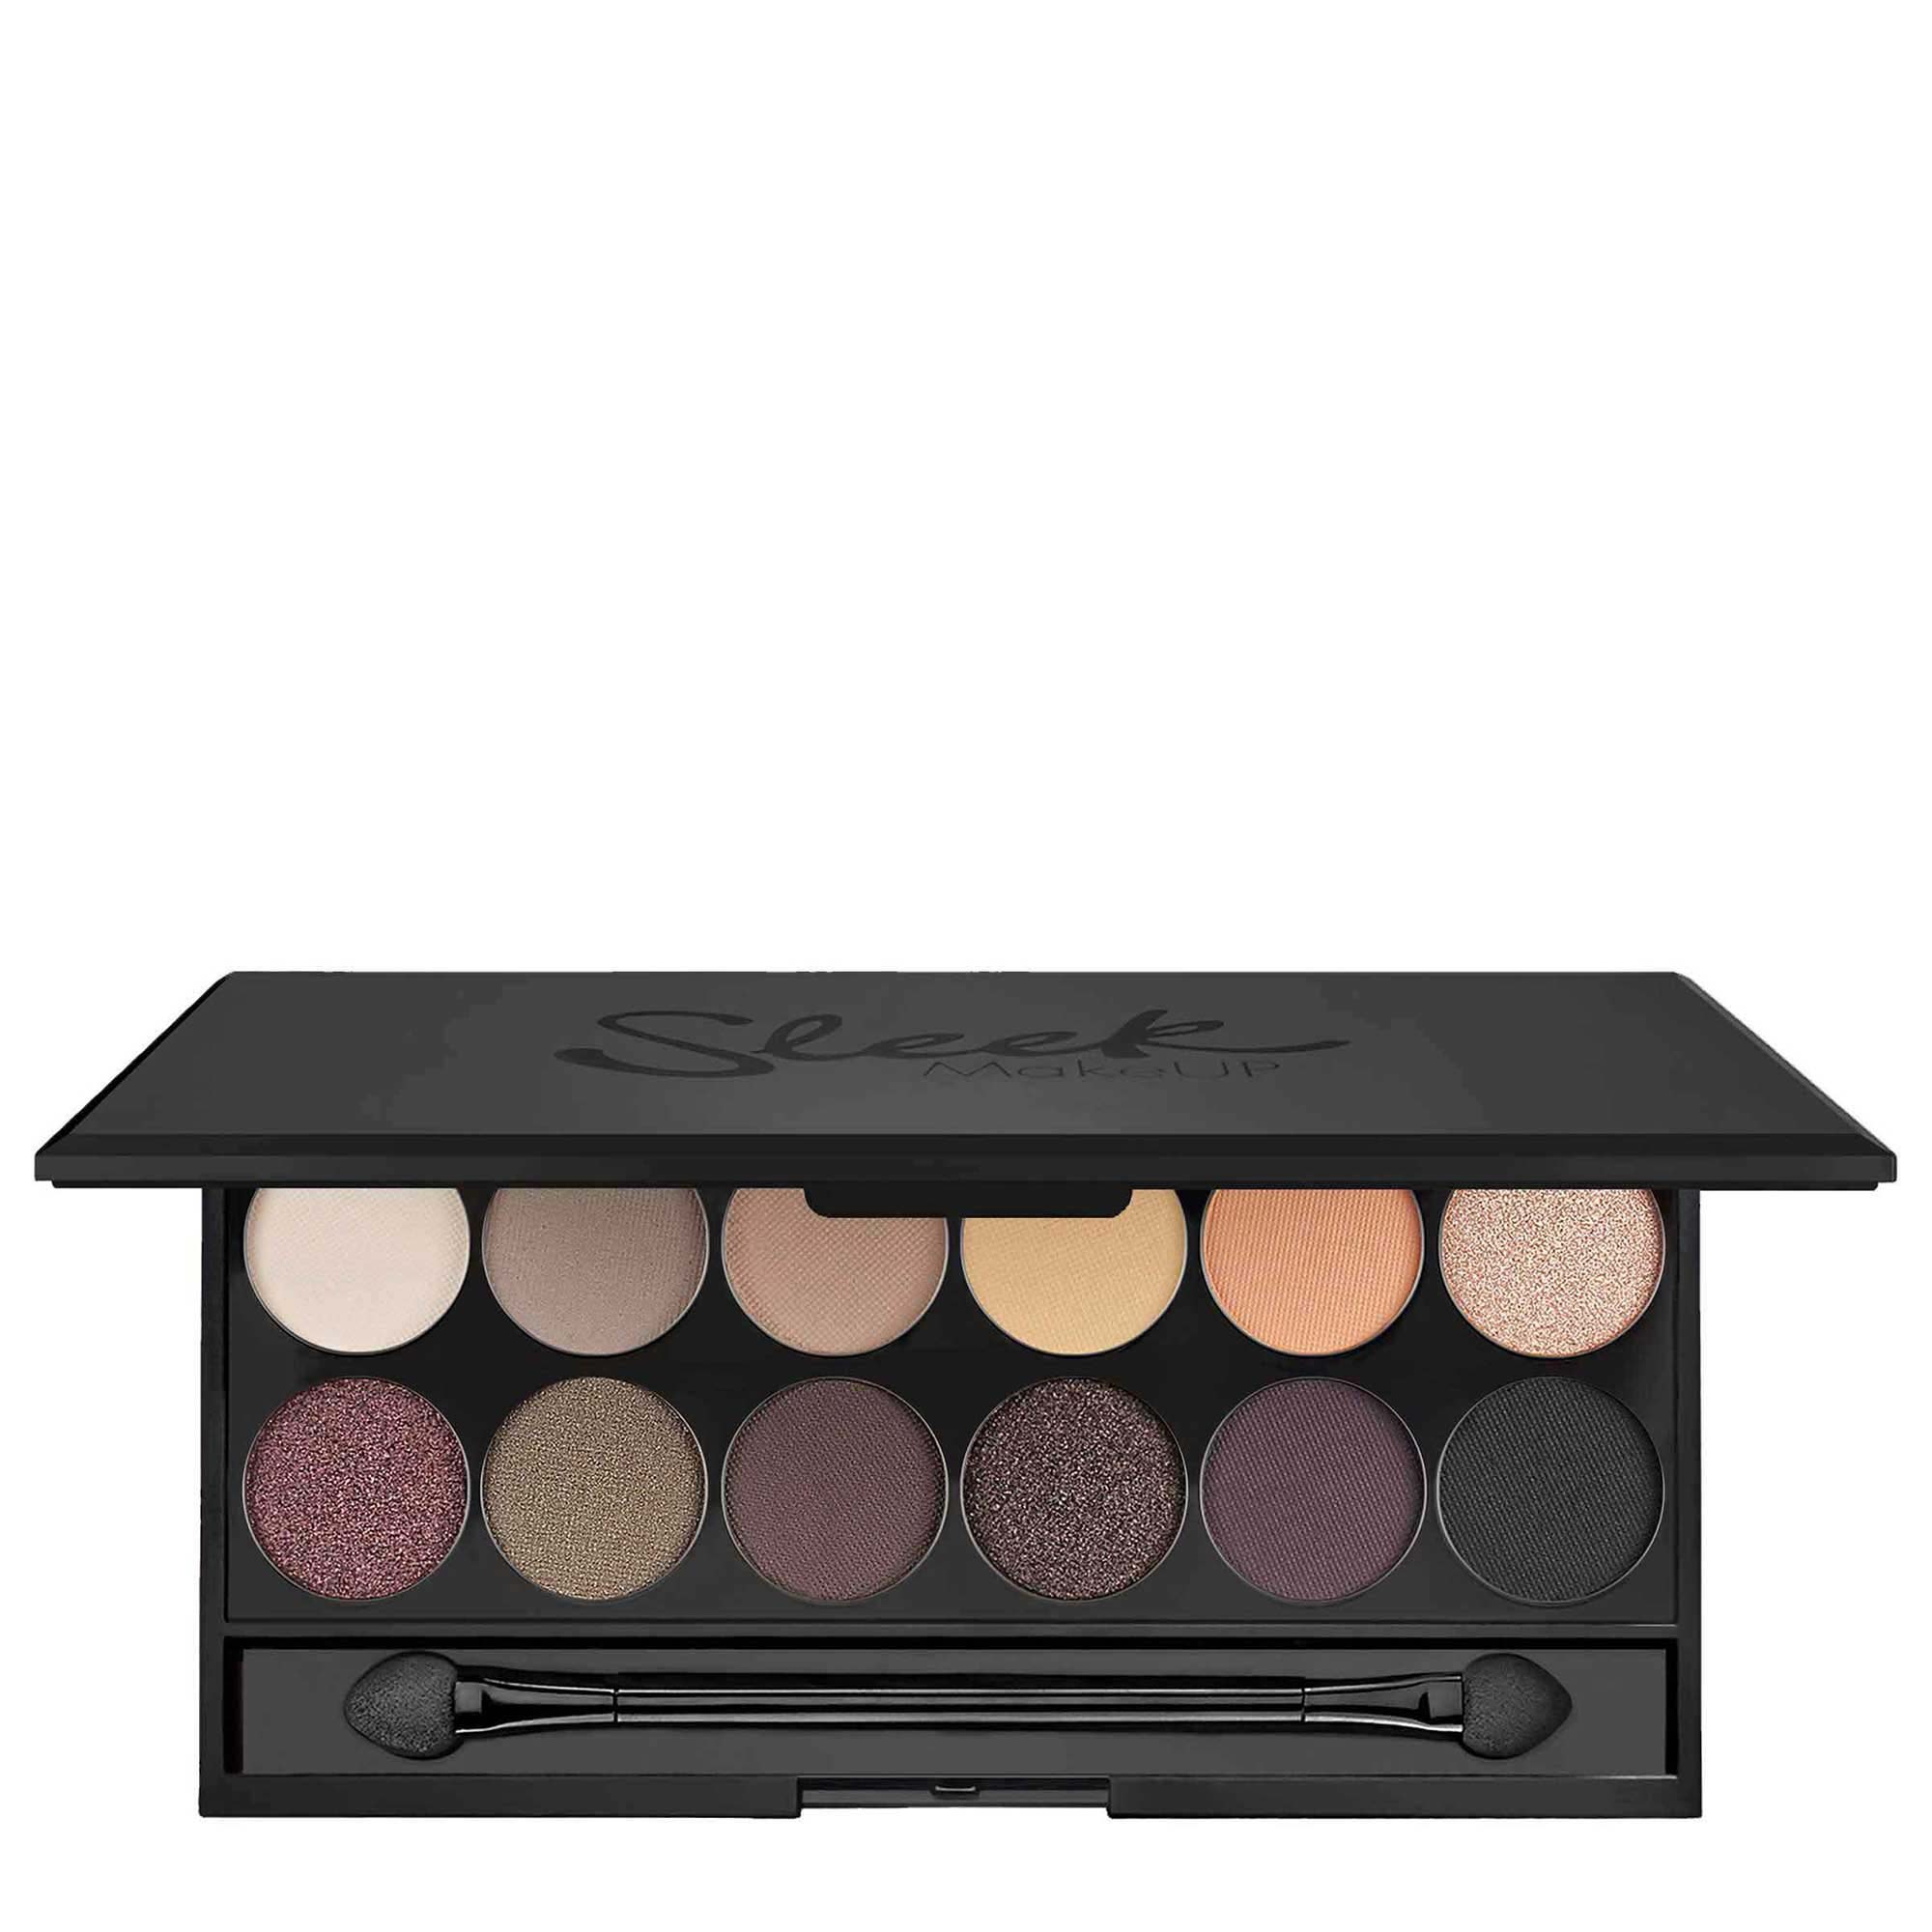 Eyeshadow Palette Cream Tea Sleek Makeup